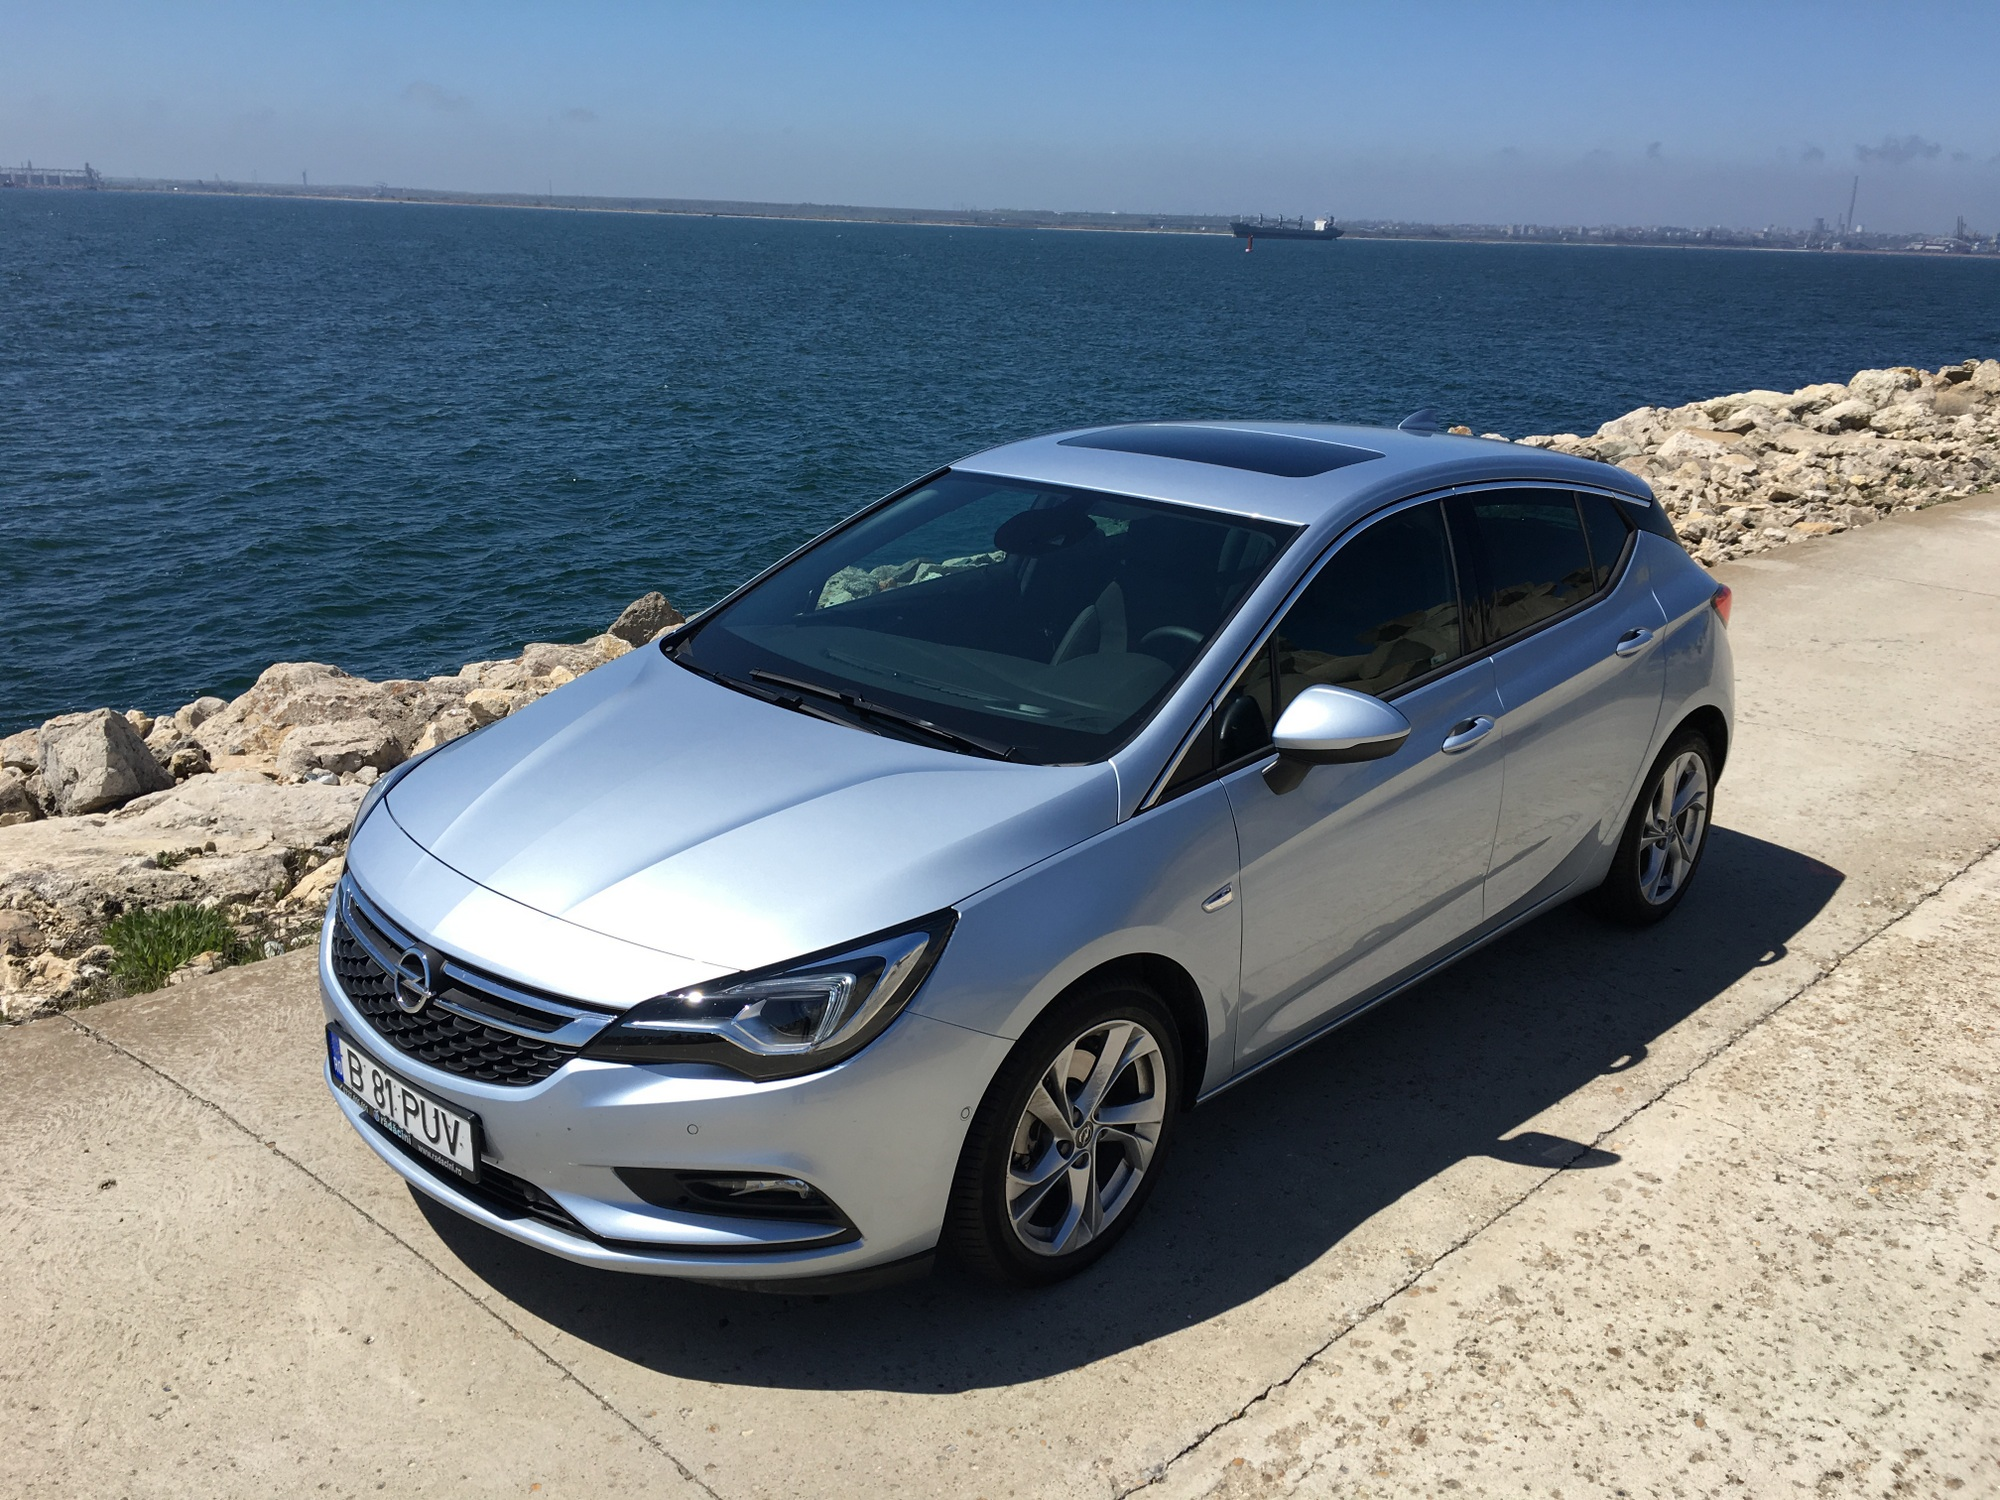 test drive opel astra k 1 6 cdti 136cp dynamic at. Black Bedroom Furniture Sets. Home Design Ideas